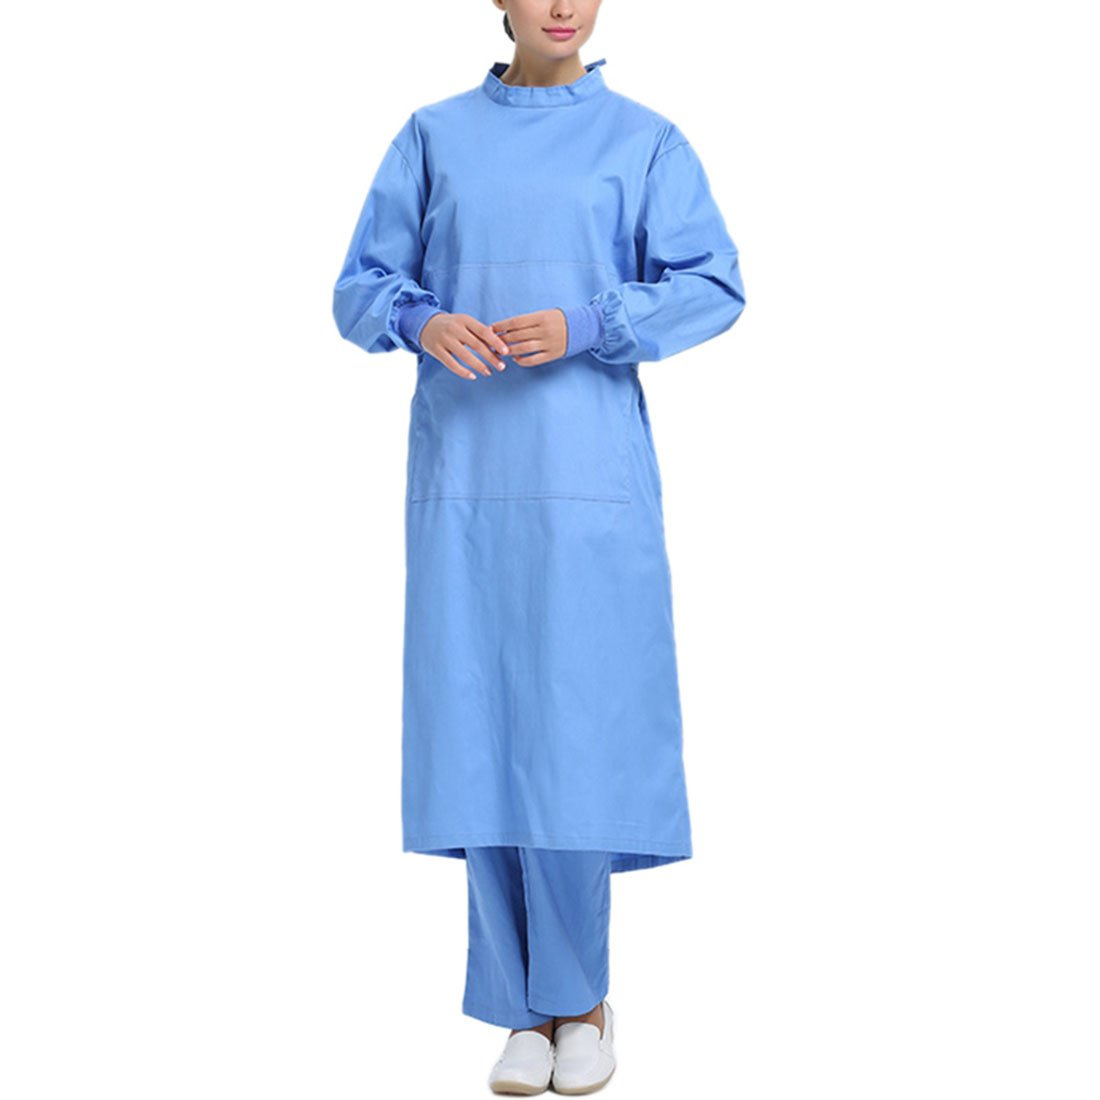 Pinji Surgical Gown Semi-coated Cotton Surgical Clothes High Temperature Resistance Workwear for Hospital Blue(Women) 2XL